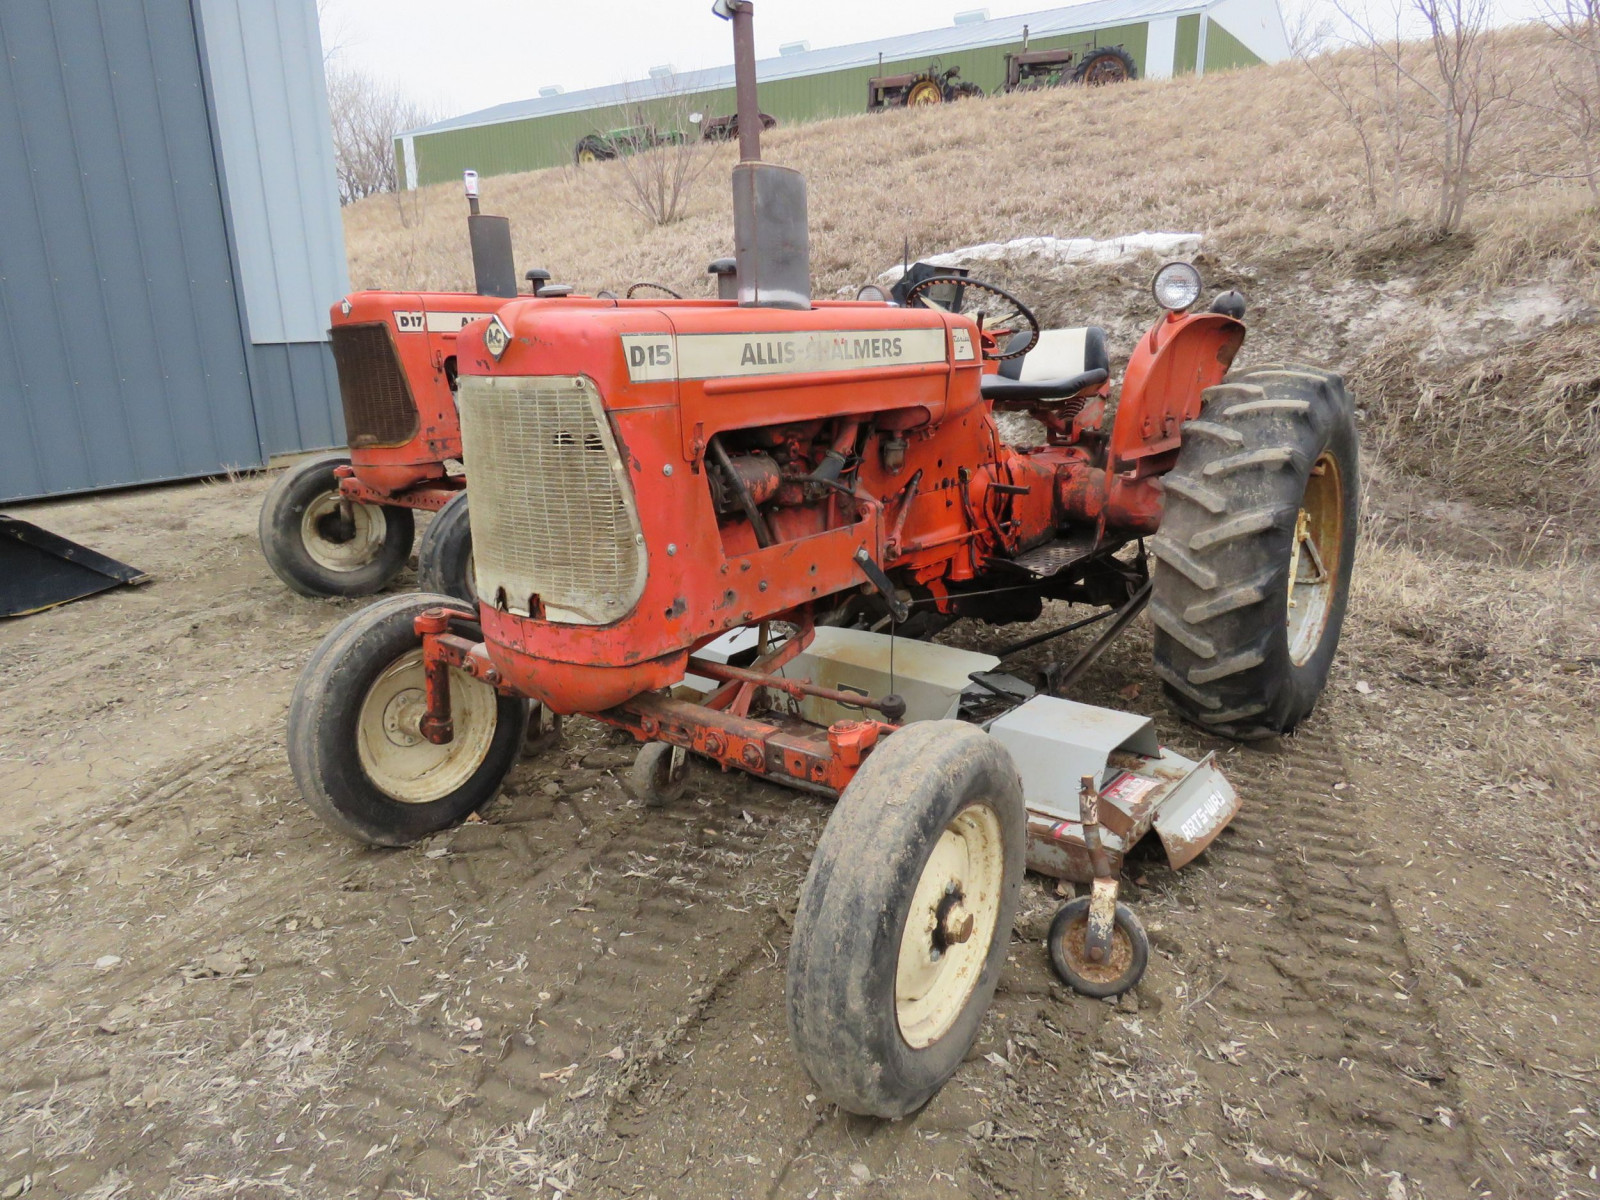 Allis Chalmers D15 with Mower - Image 3